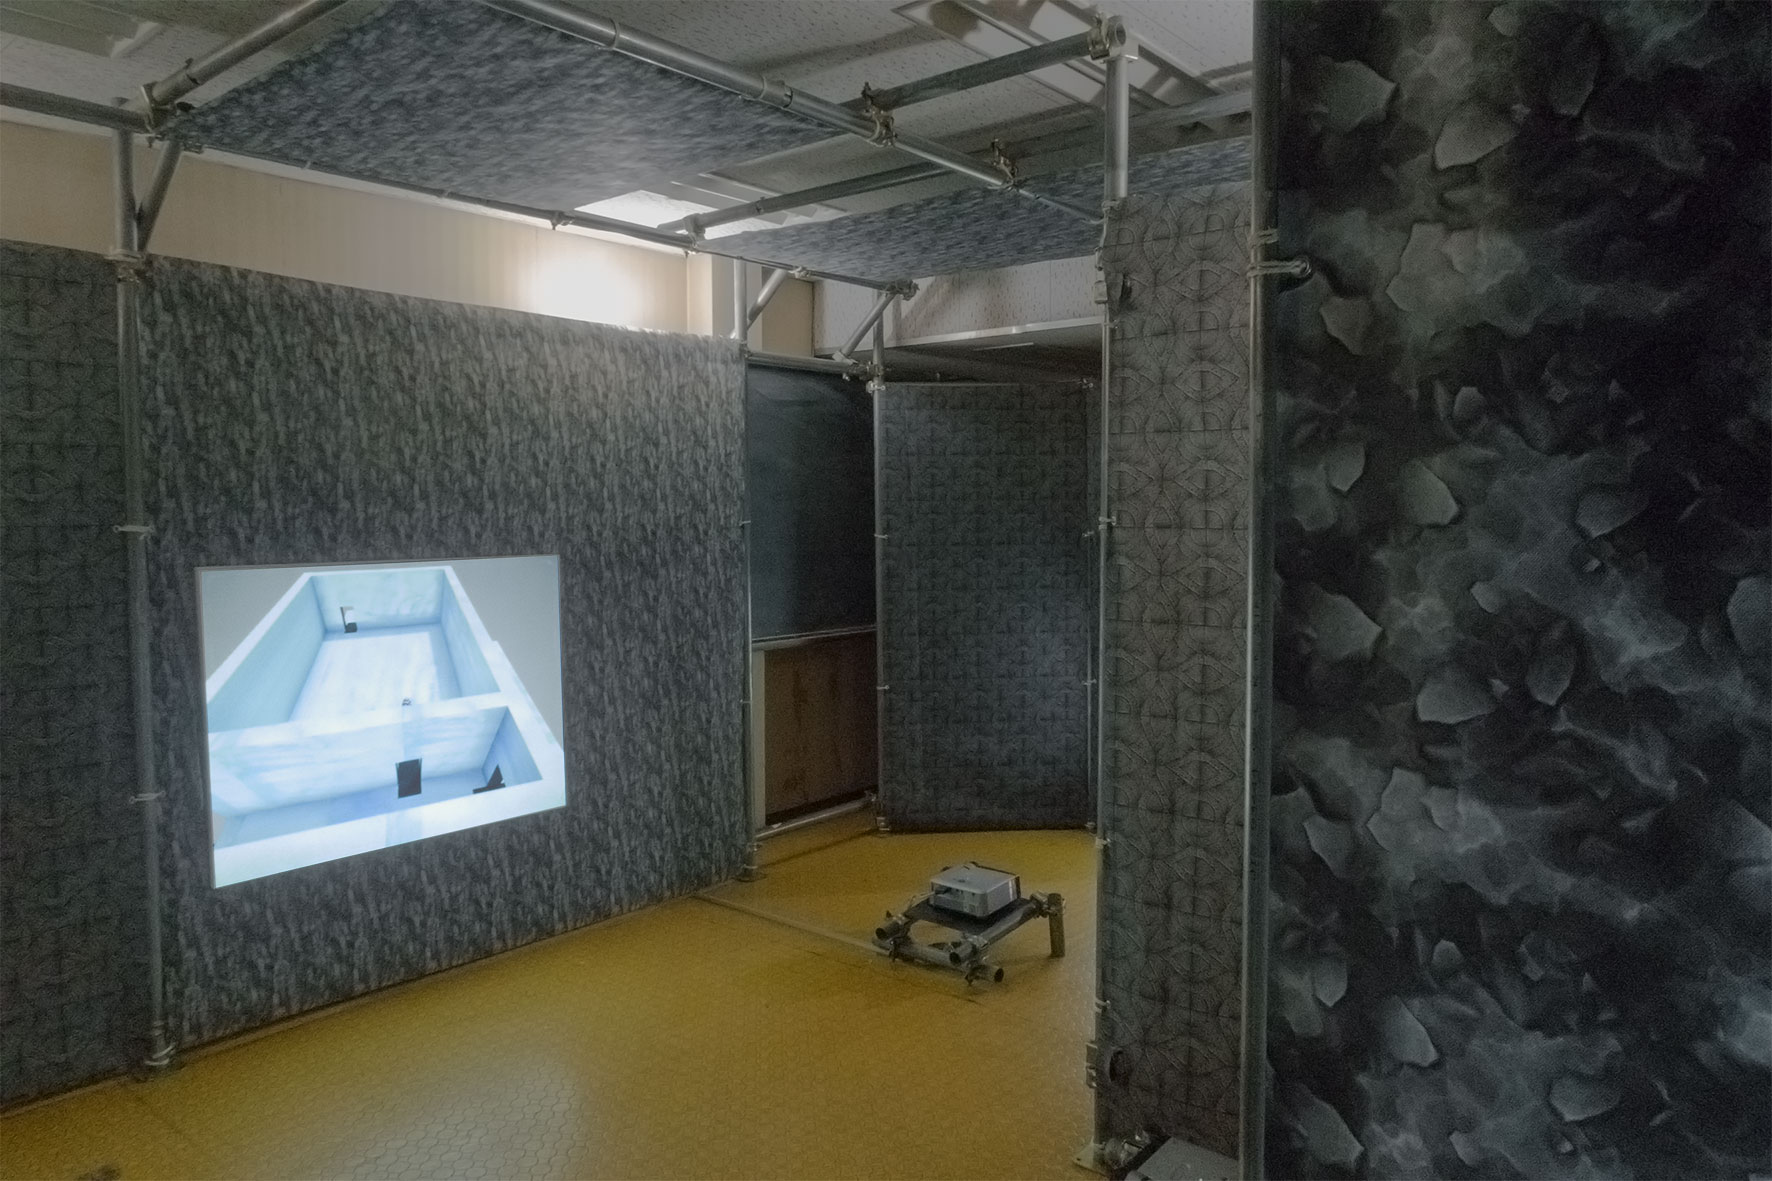 Mickael Lianza Magrathea art video game Palais des paris japon installation